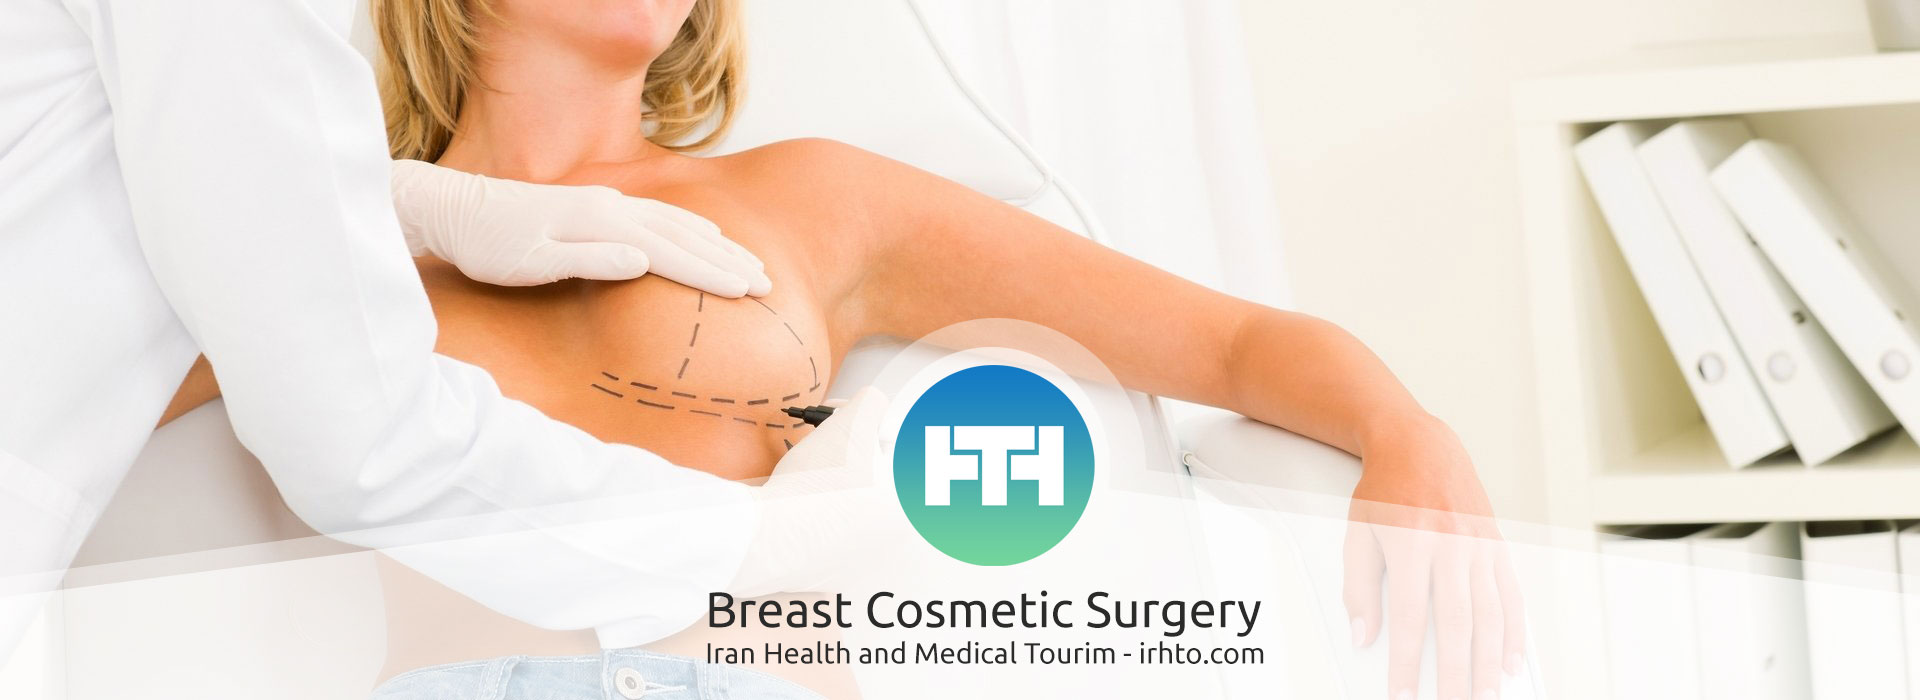 Breast Cosmetic Surgery